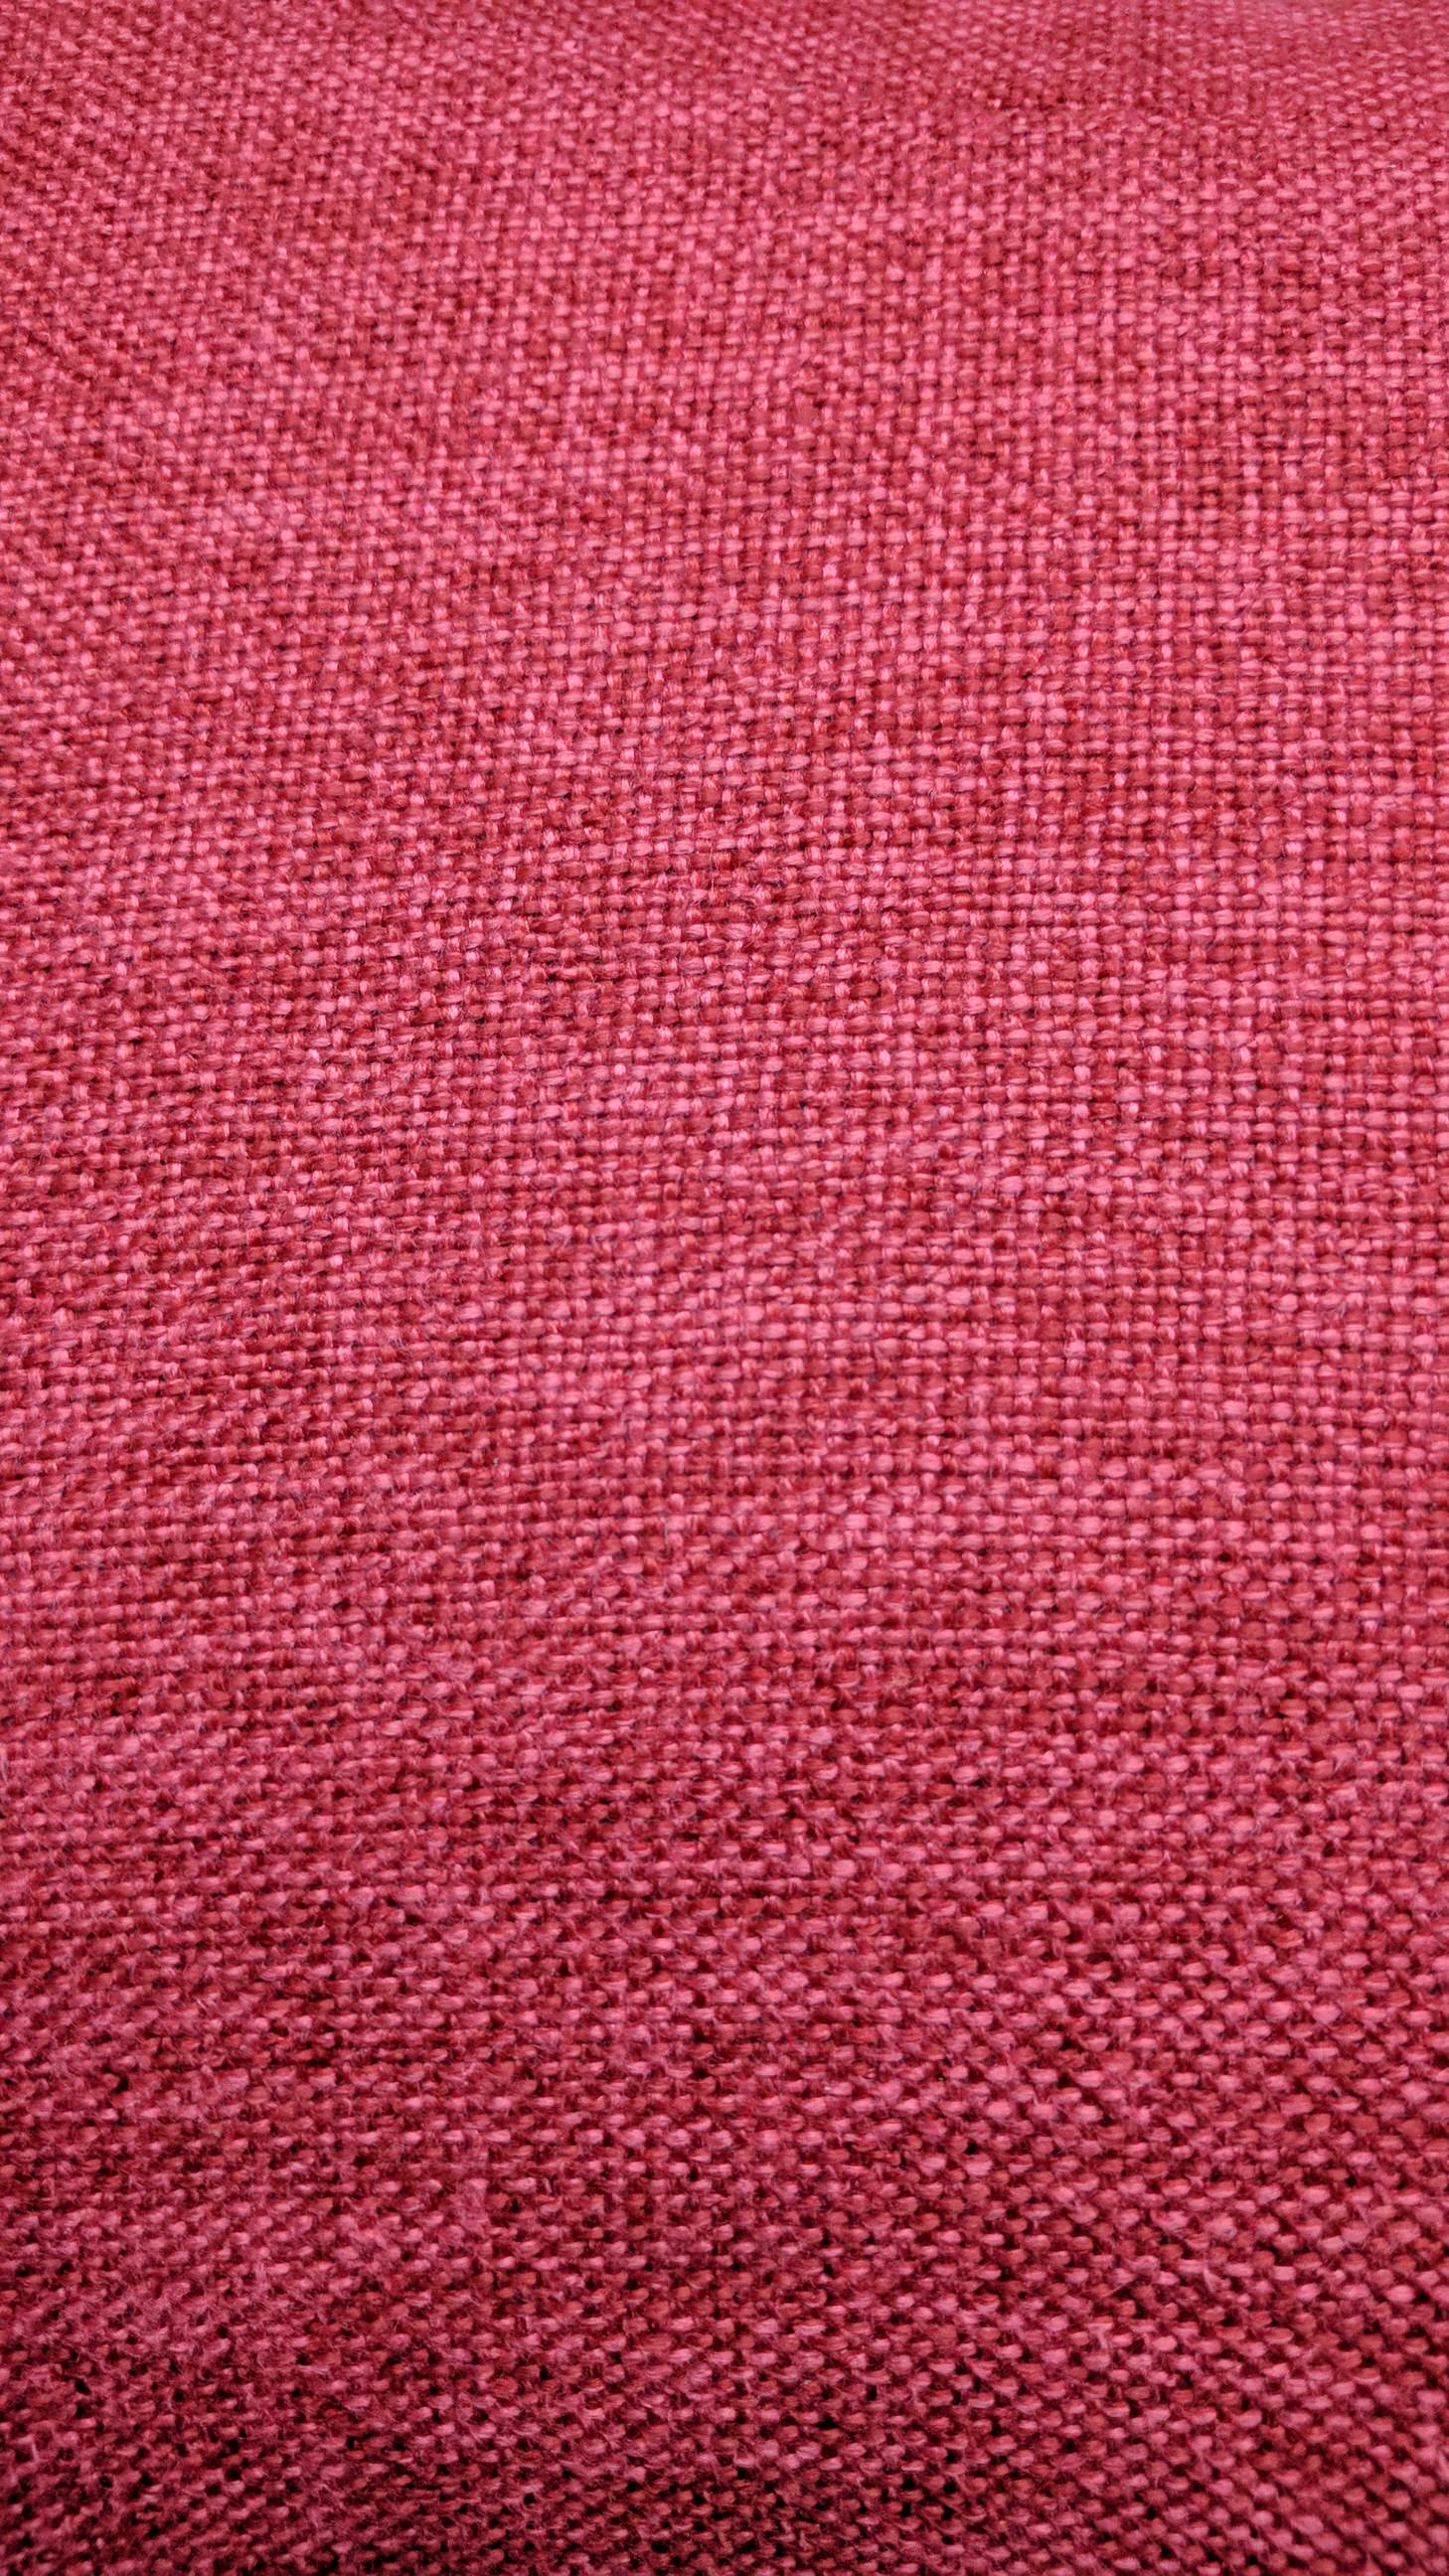 used sofas off chaise red second hand pink tufted lounge